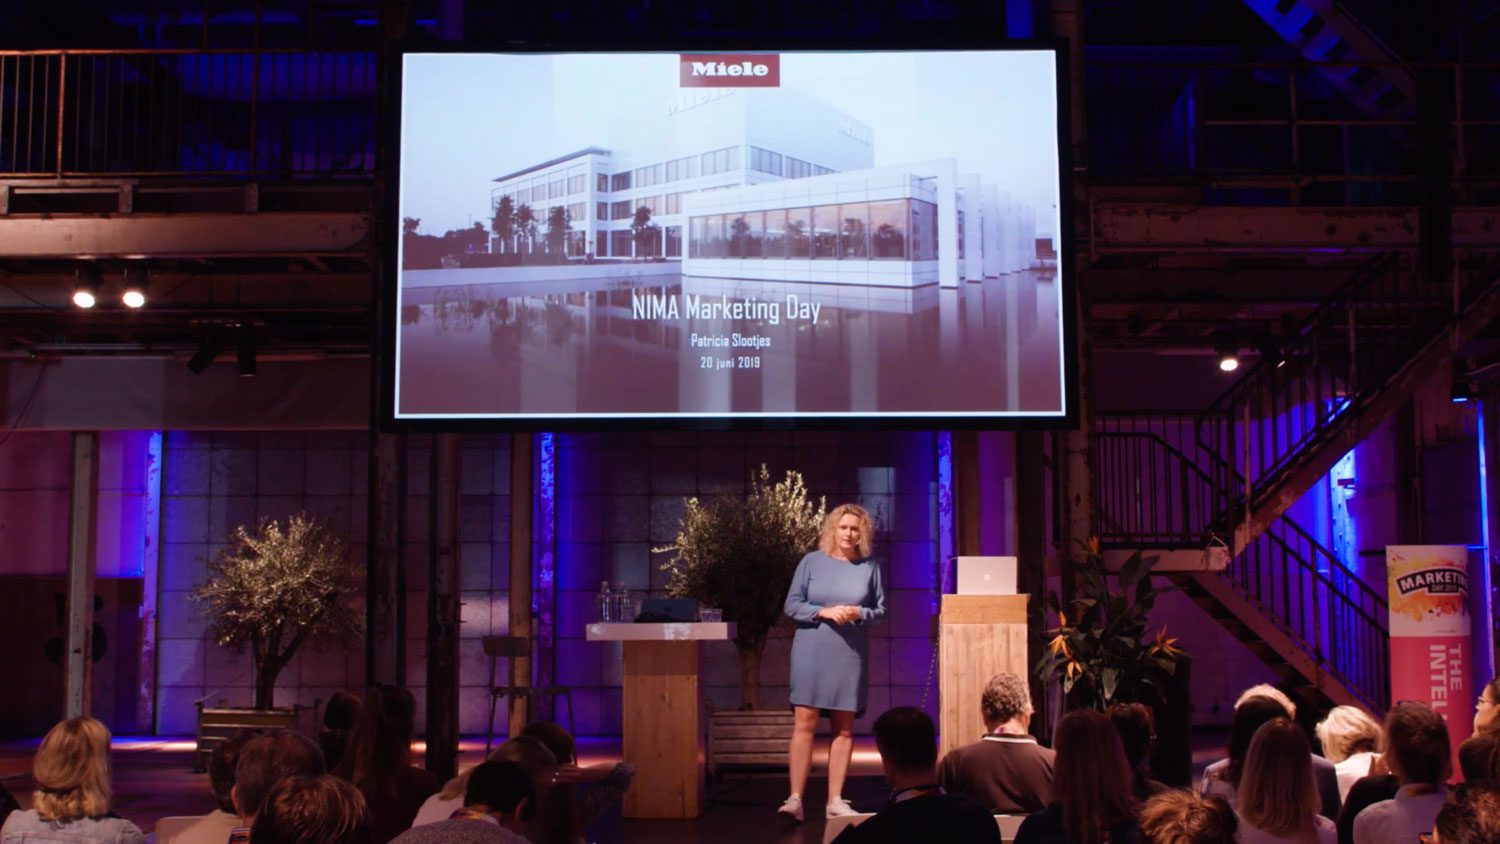 Vijftien video registraties voor NIMA Marketingday